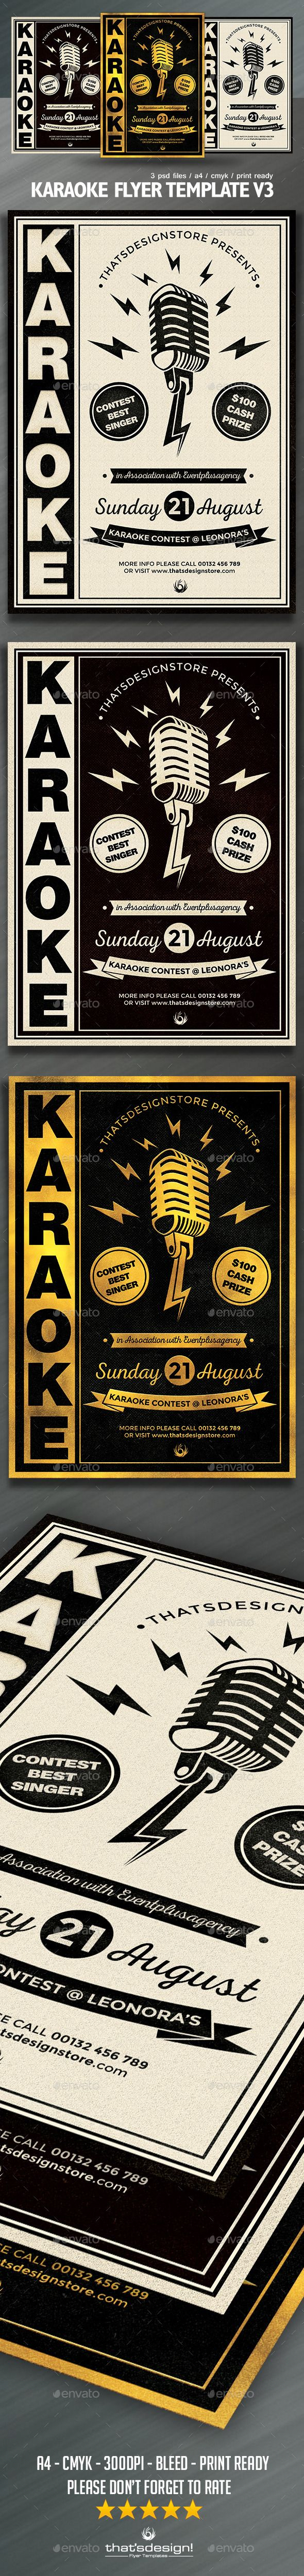 Karaoke Flyer Template PSD #design Download: http://graphicriver.net/item/karaoke-flyer-template-v3/12897018?ref=ksioks